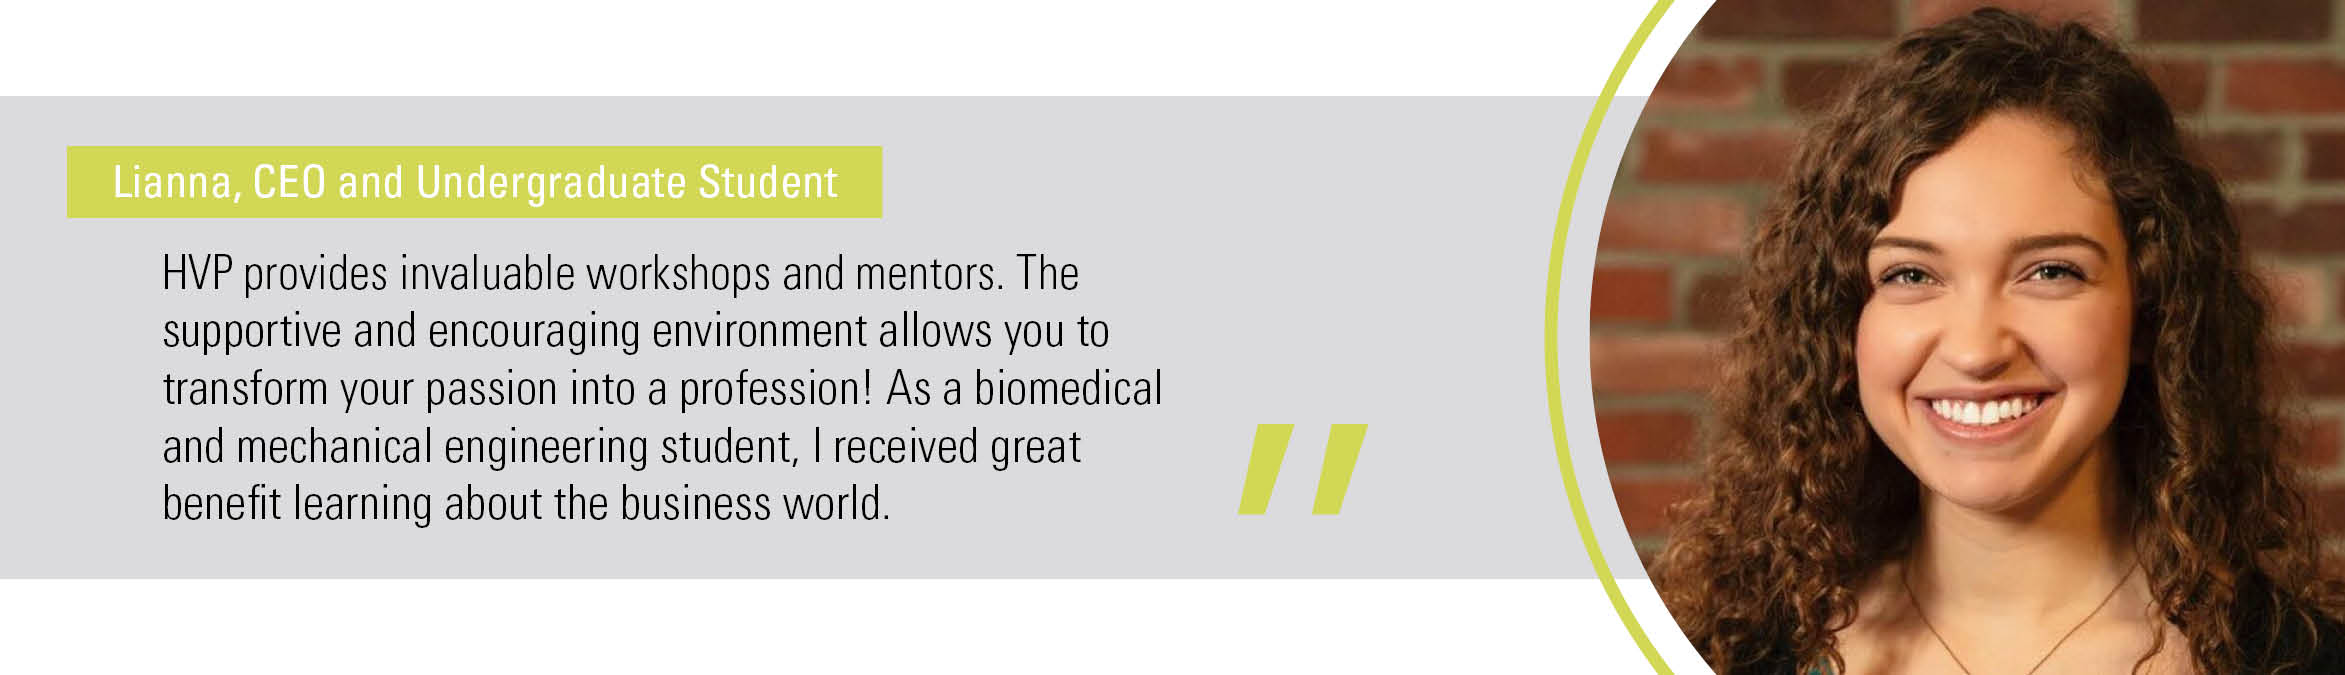 """""""HVP provides invaluable workshops and mentors. The  supportive and encouraging environment allows you to transform your passion into a profession!"""""""